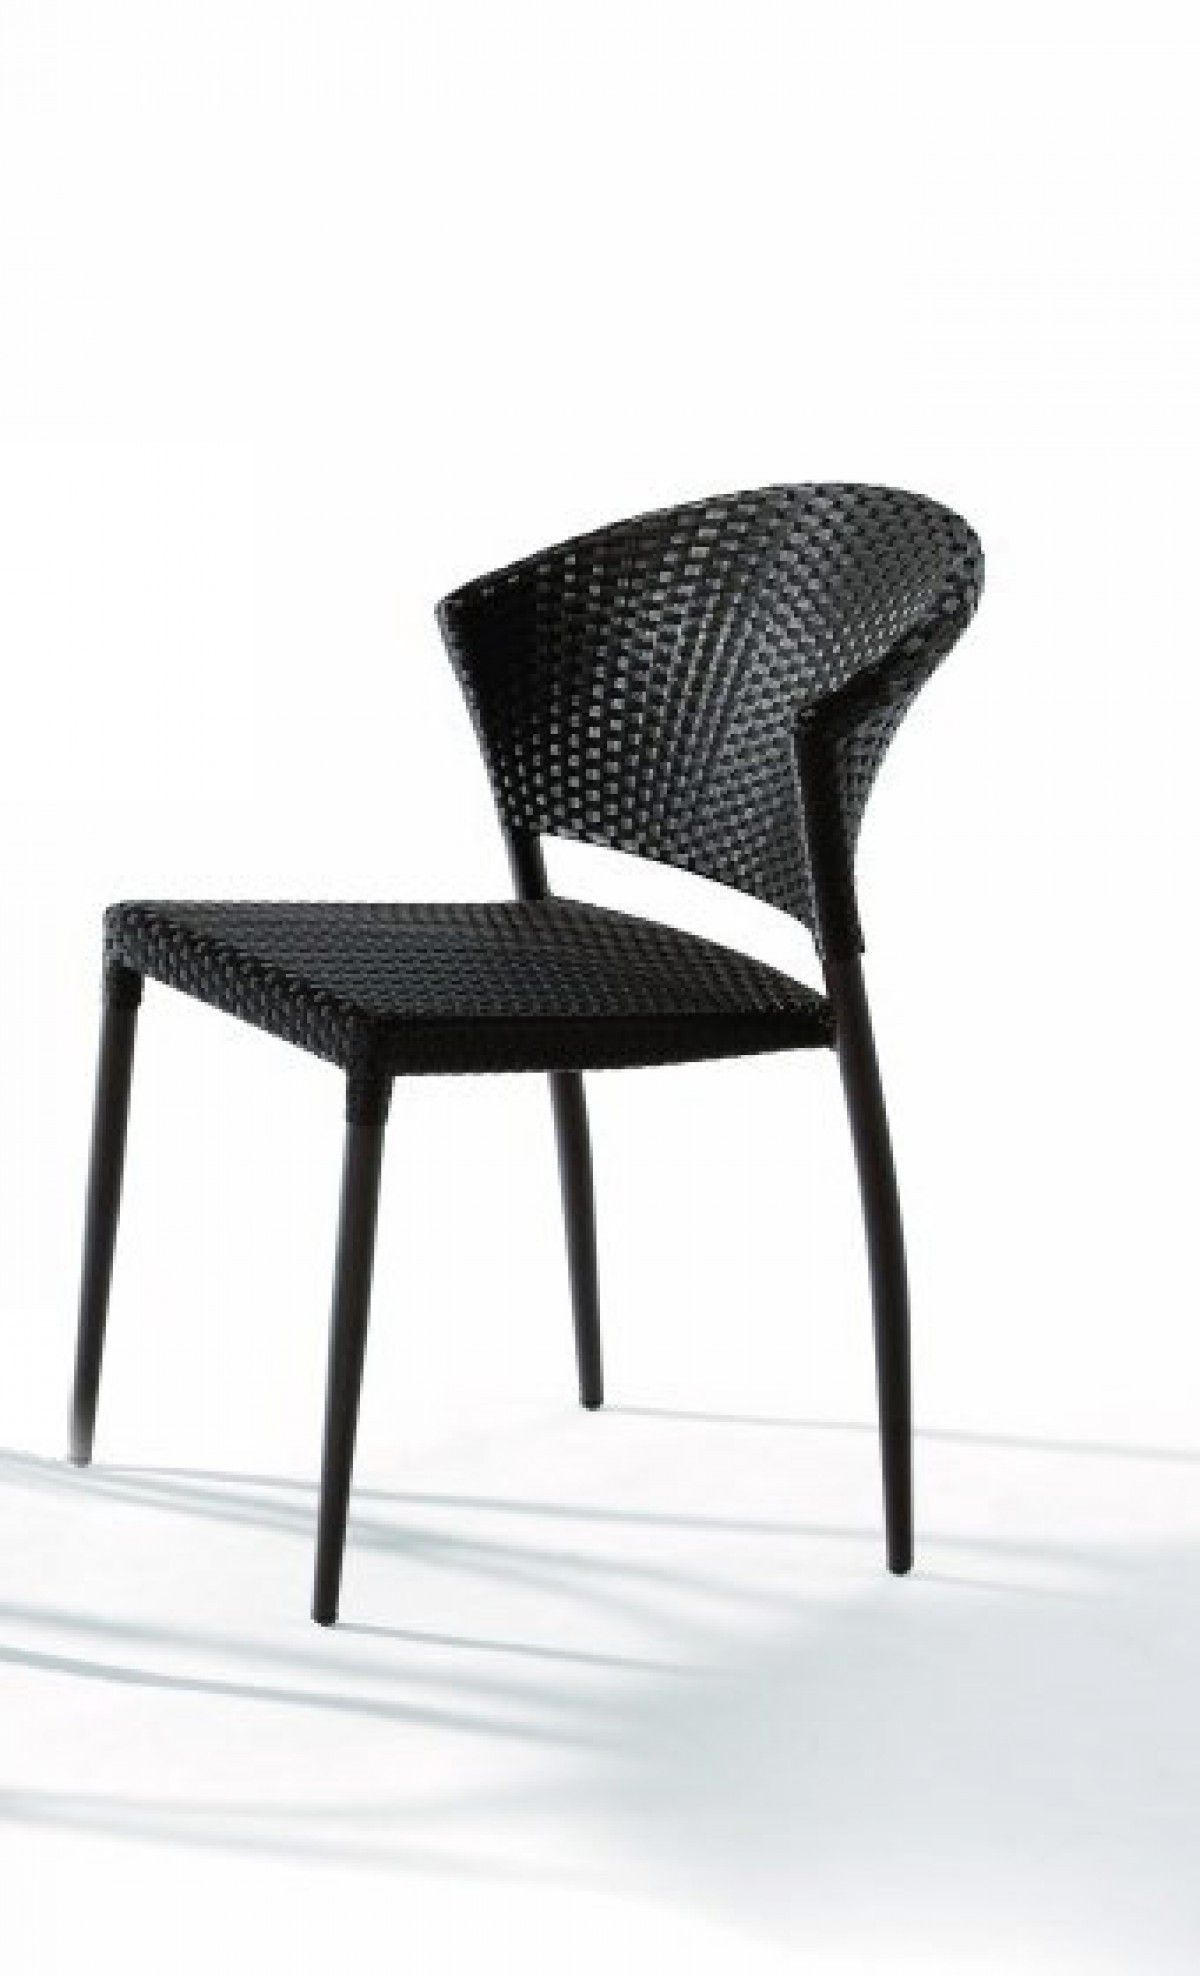 Renava Modern Patio Chair VGHT H02 CH Products